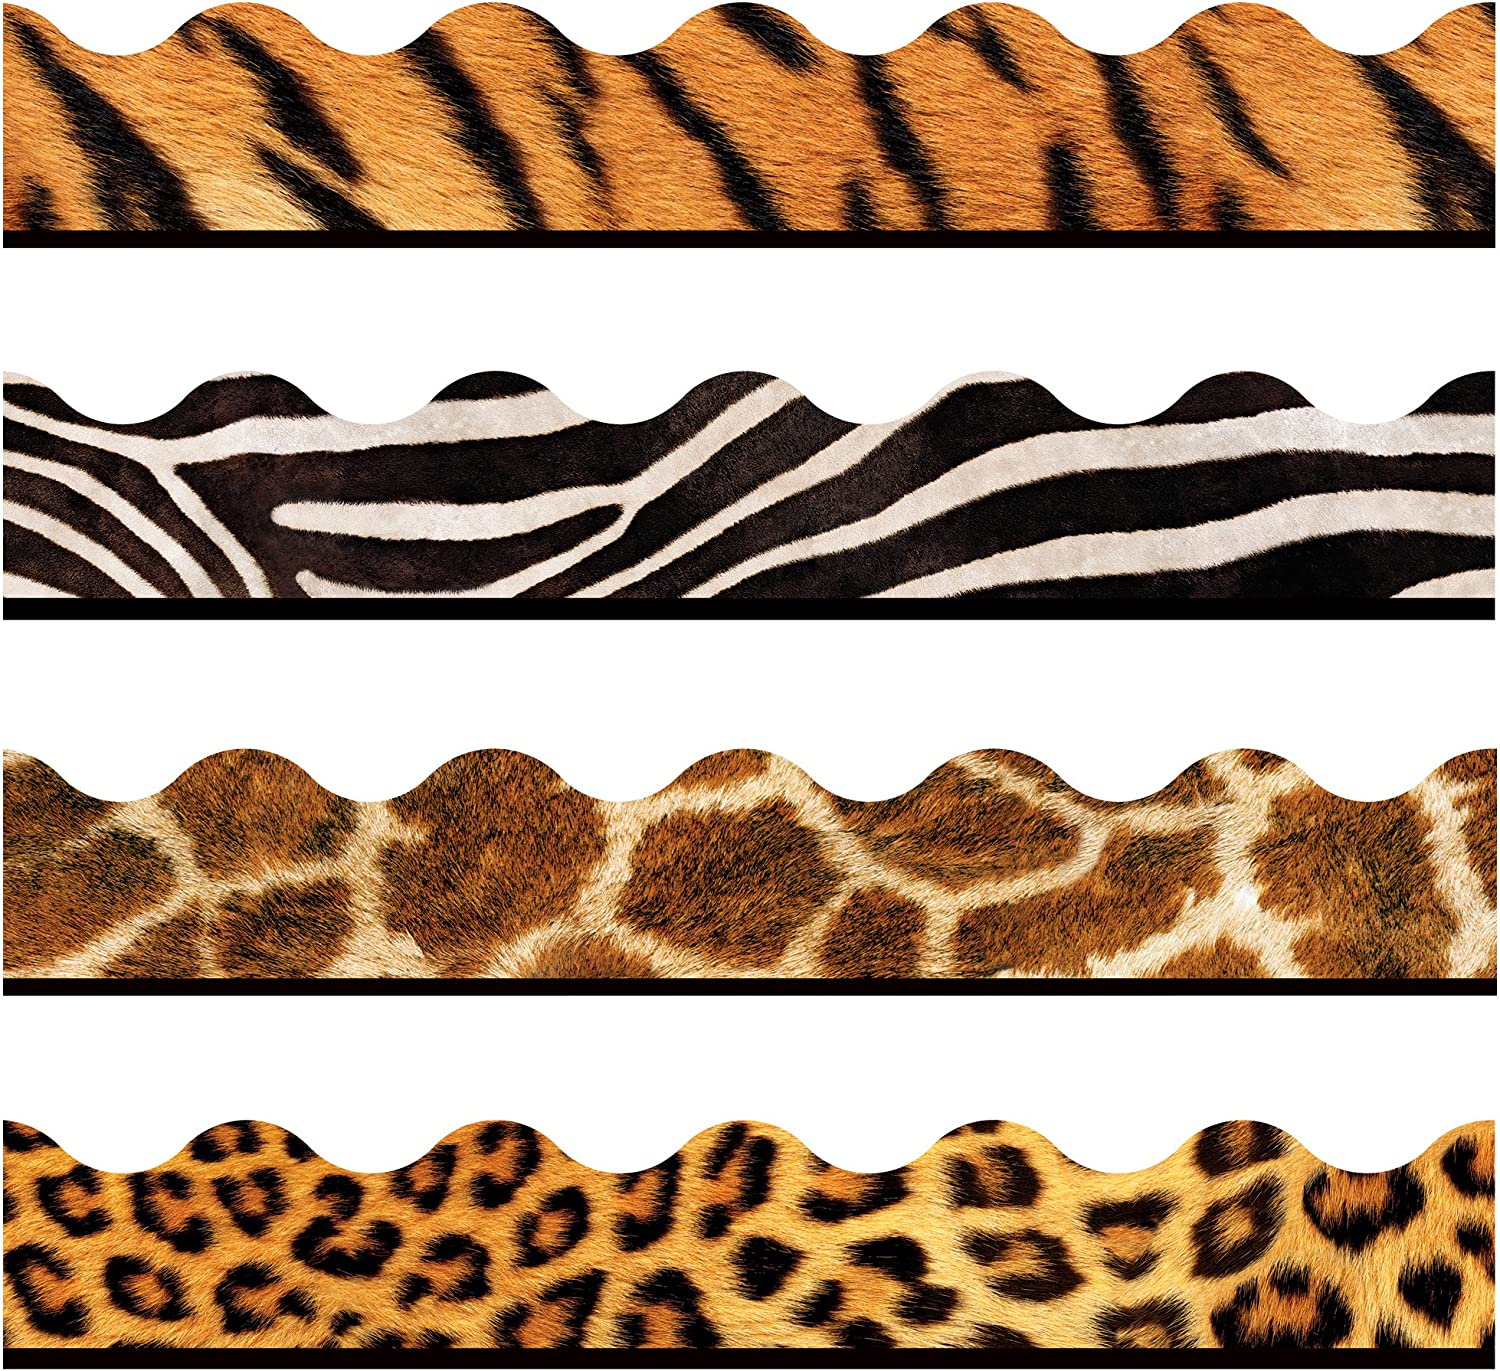 TREND enterprises, Inc. T-92917 Animal Prints Terrific Trimmers, Variety Pack, 156', Brown